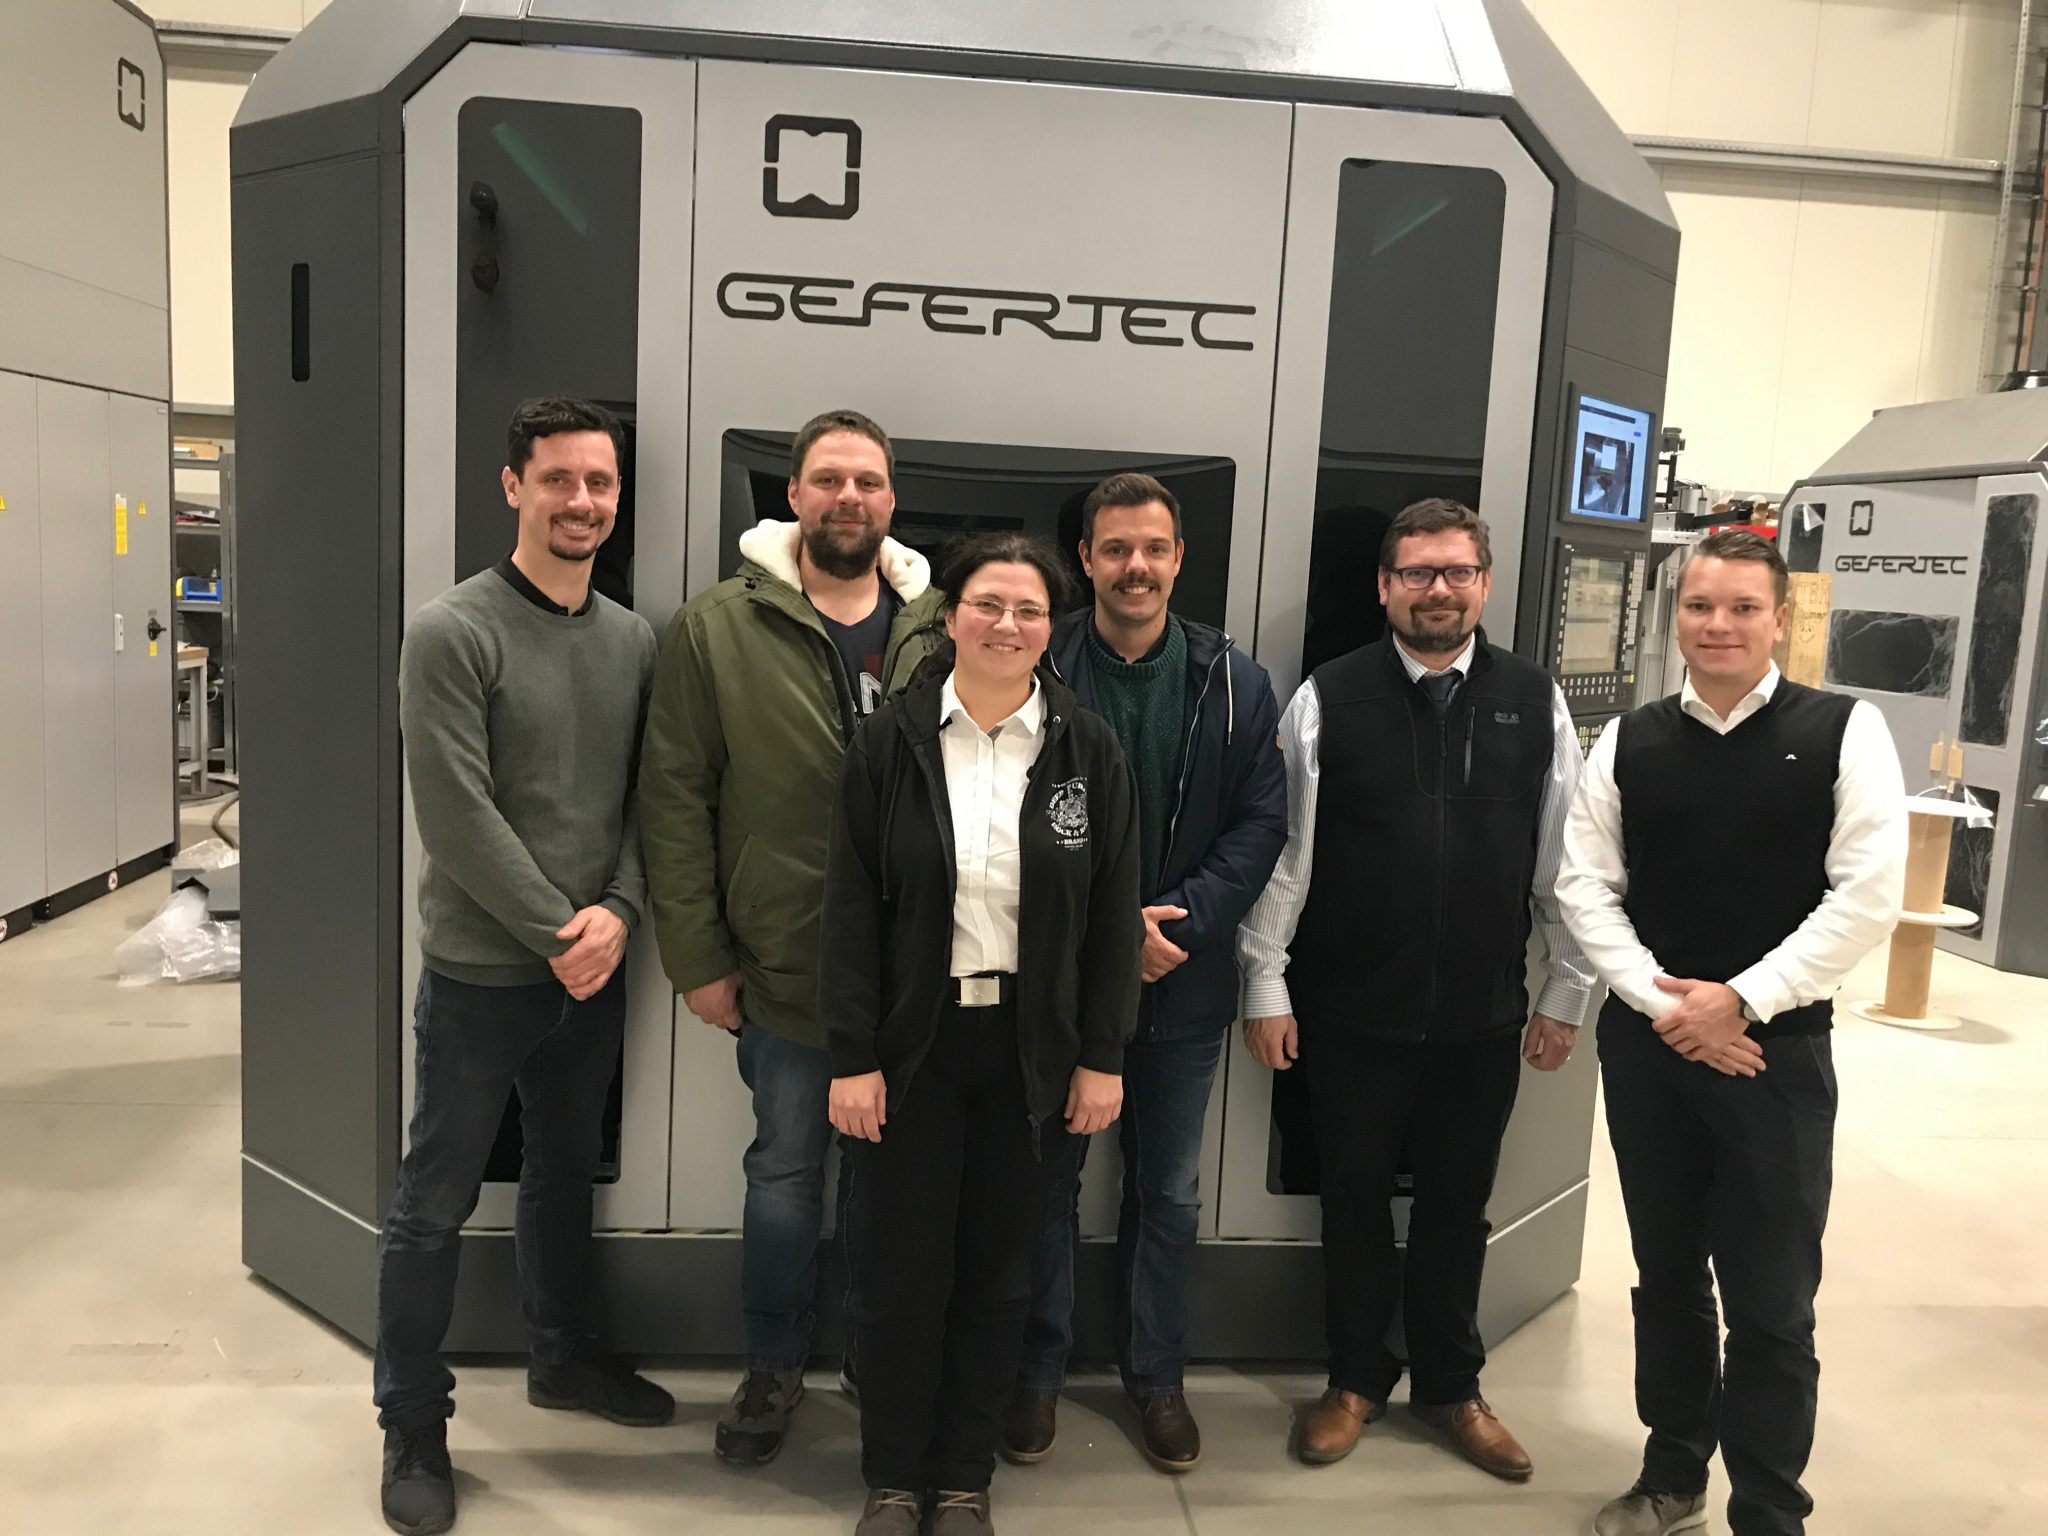 Dr. Roman Herzig (2nd from right) at GEFERTEC in Berlin for pre-approval of the new arc403. Photo via GEFERTEC.